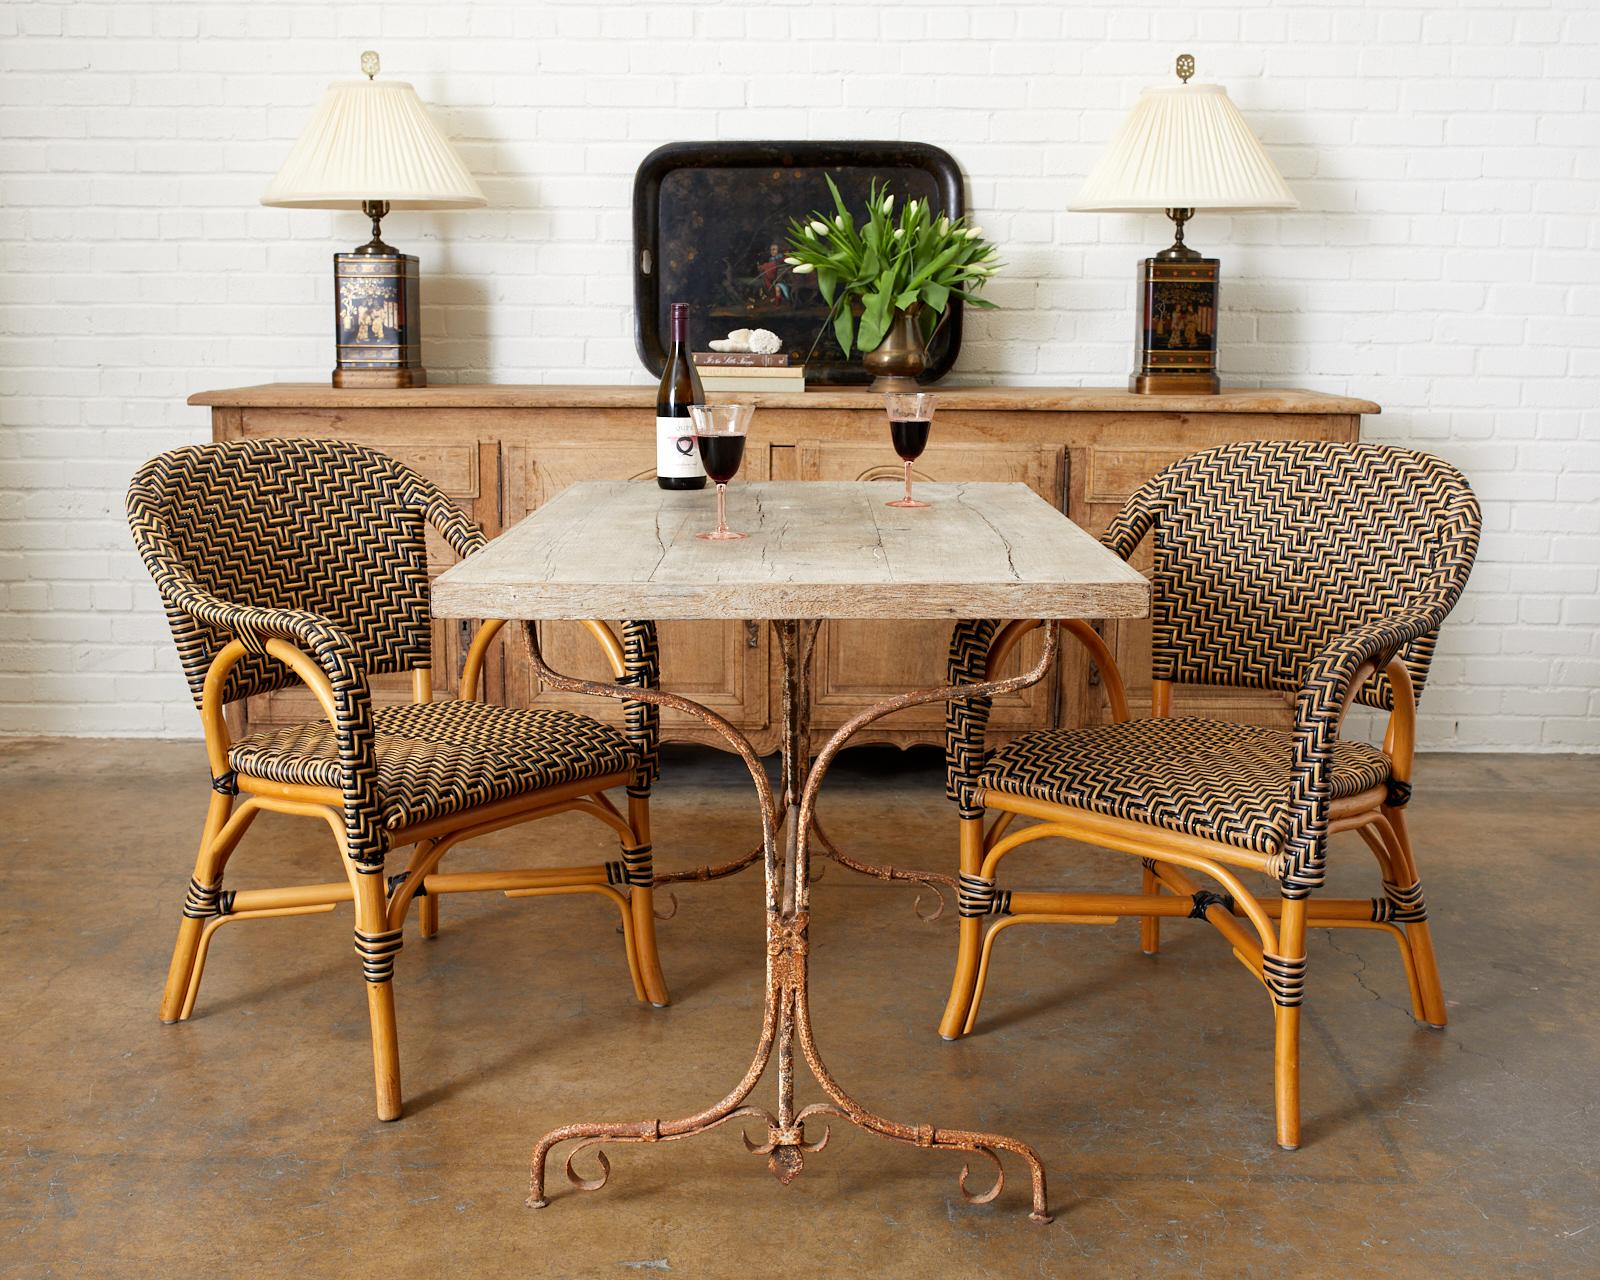 Rustic French Bistro Style Dining Table, Bistro Style Dining Room Sets